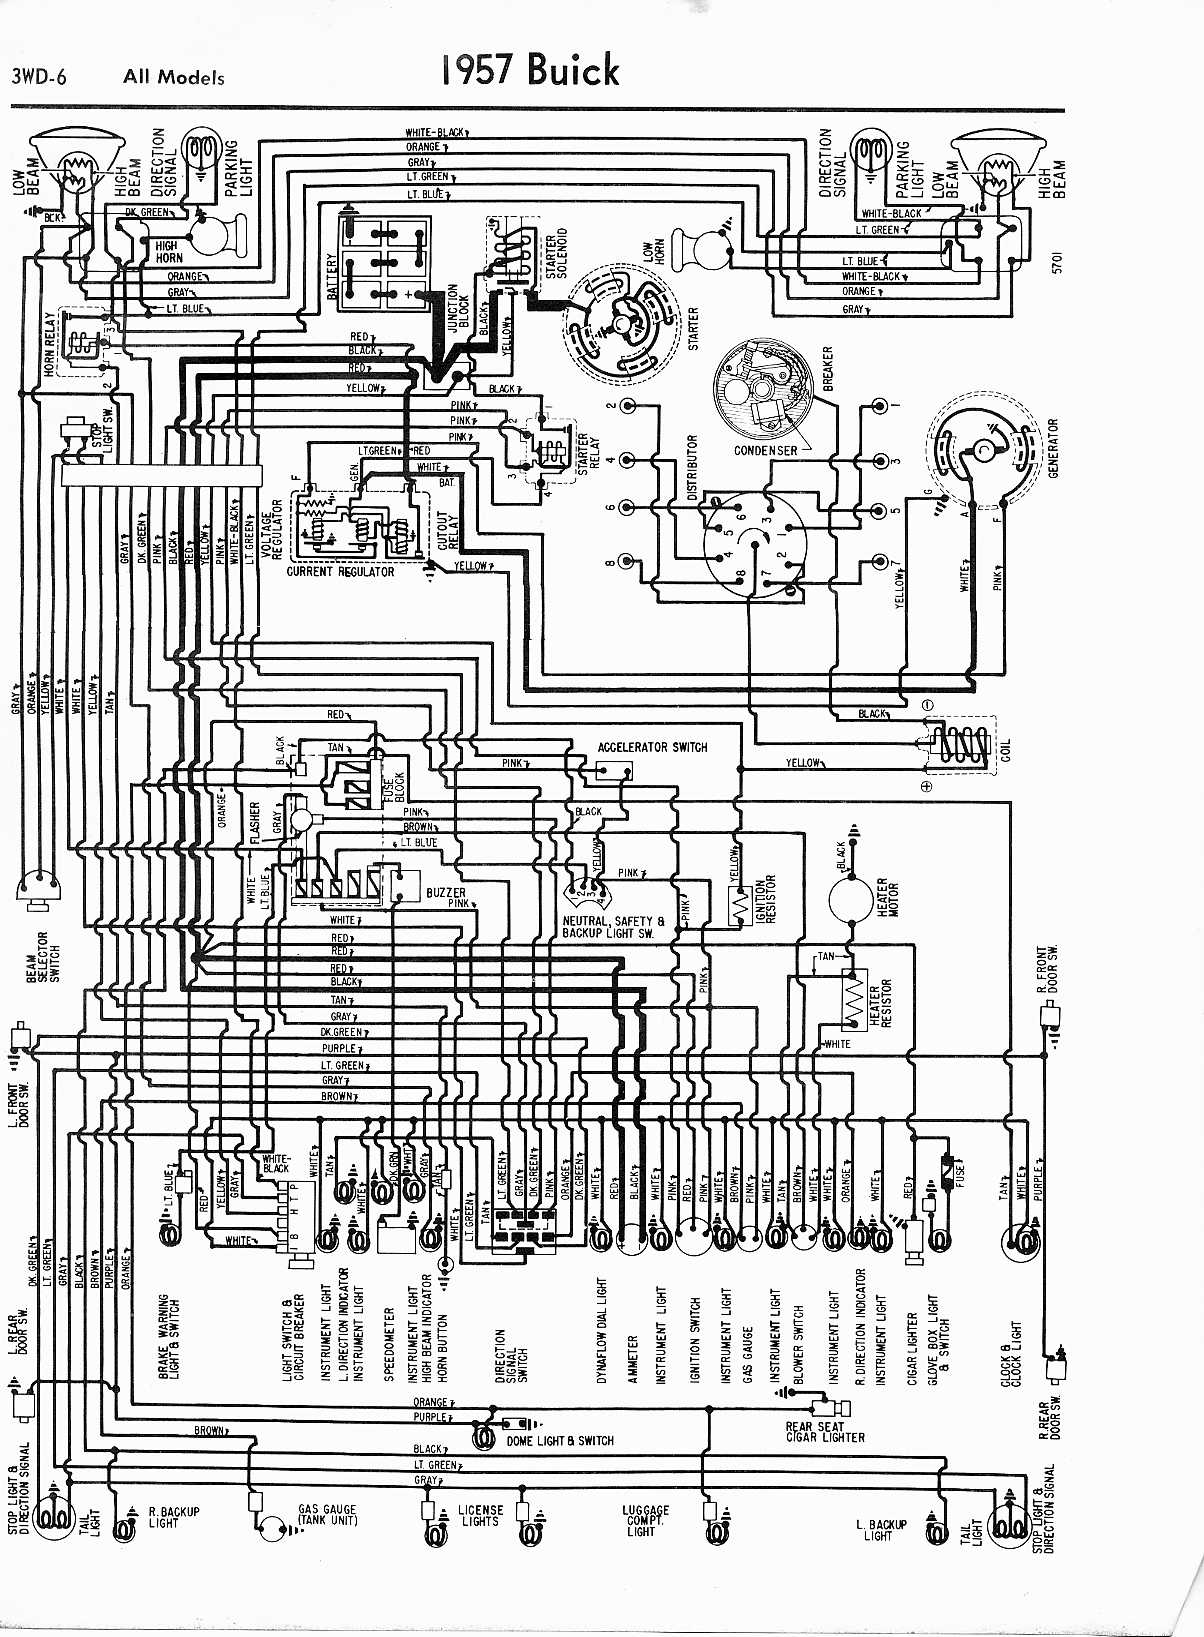 1968 Buick Riviera Wiring Diagram Diagrams 1995 Fuse Box 1957 Gas Pedal Start Problem 1996 Park Avenue 2002 Lesabre